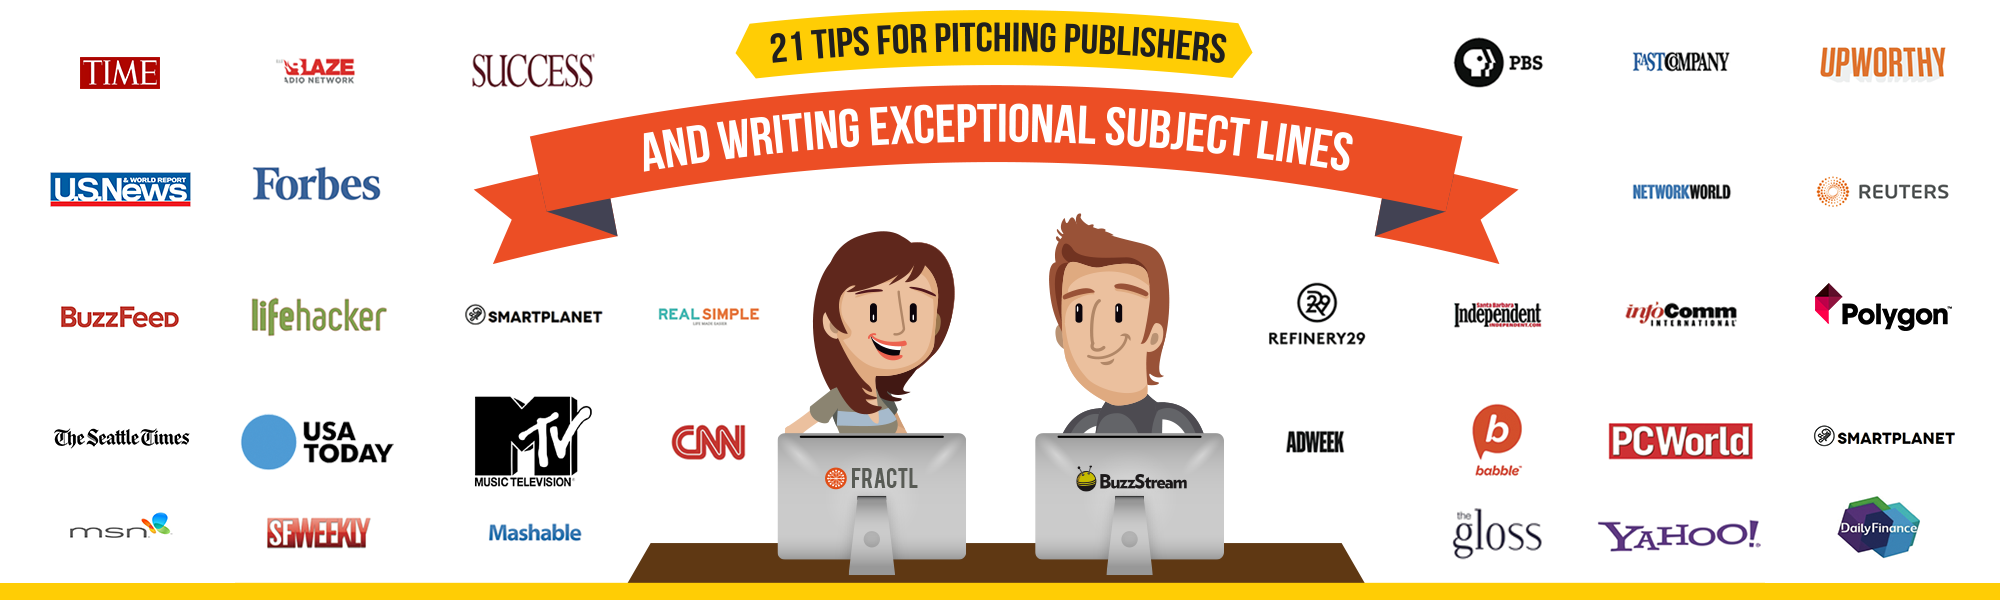 21 Tips For Pitching Publishers And Writing Exceptional Subject Lines